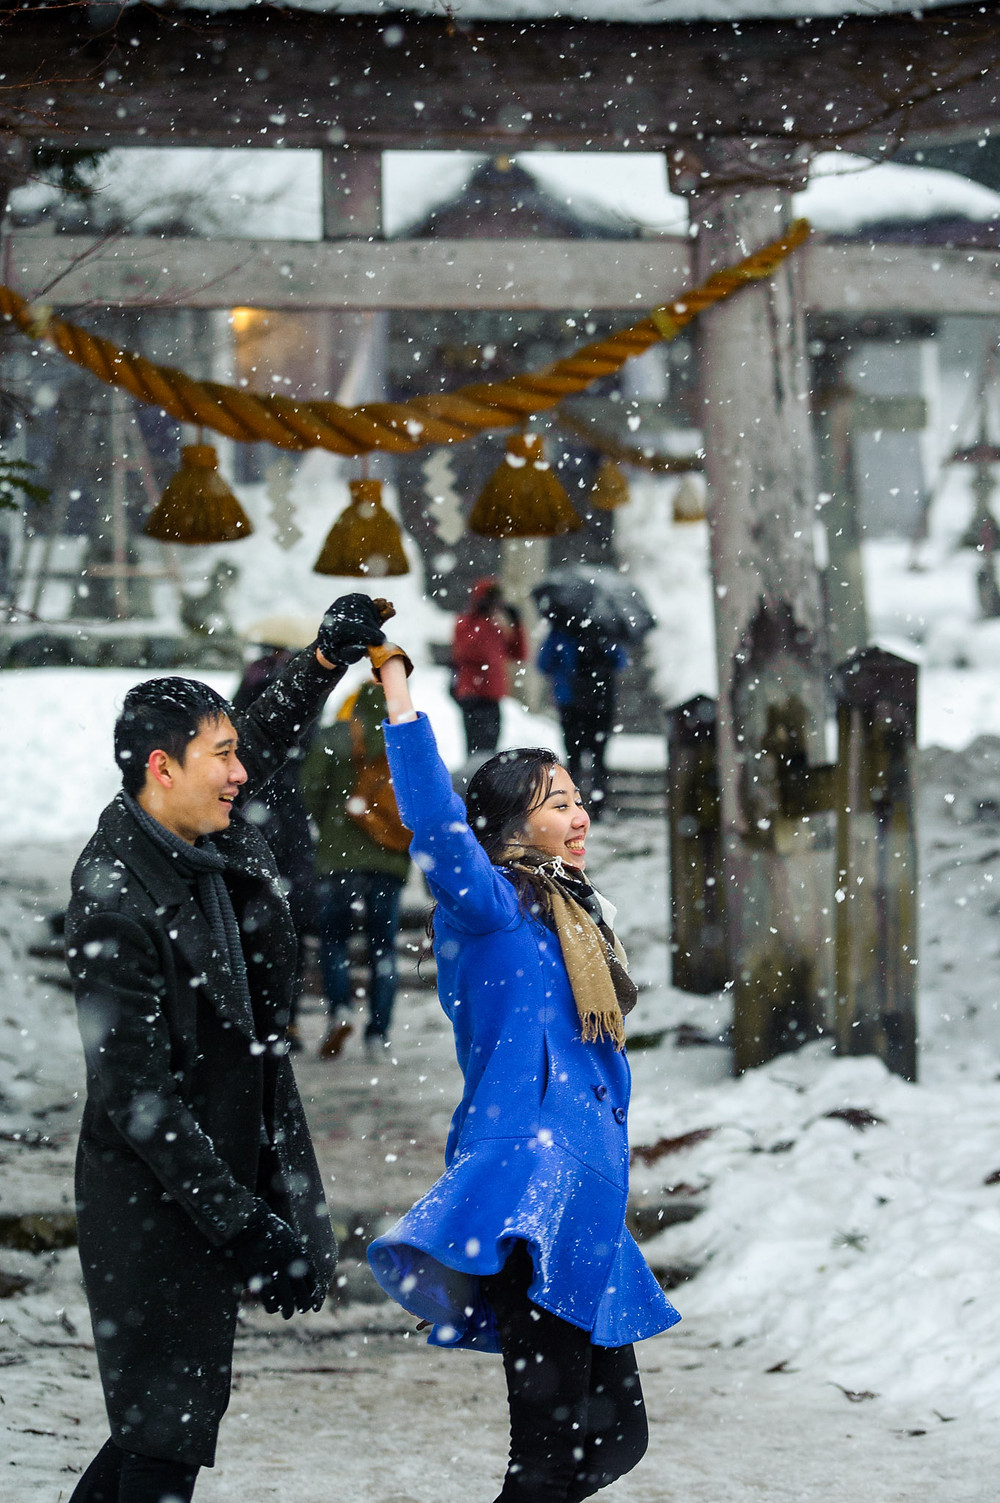 The snow falls around the couple as they dance in front of the torii gate